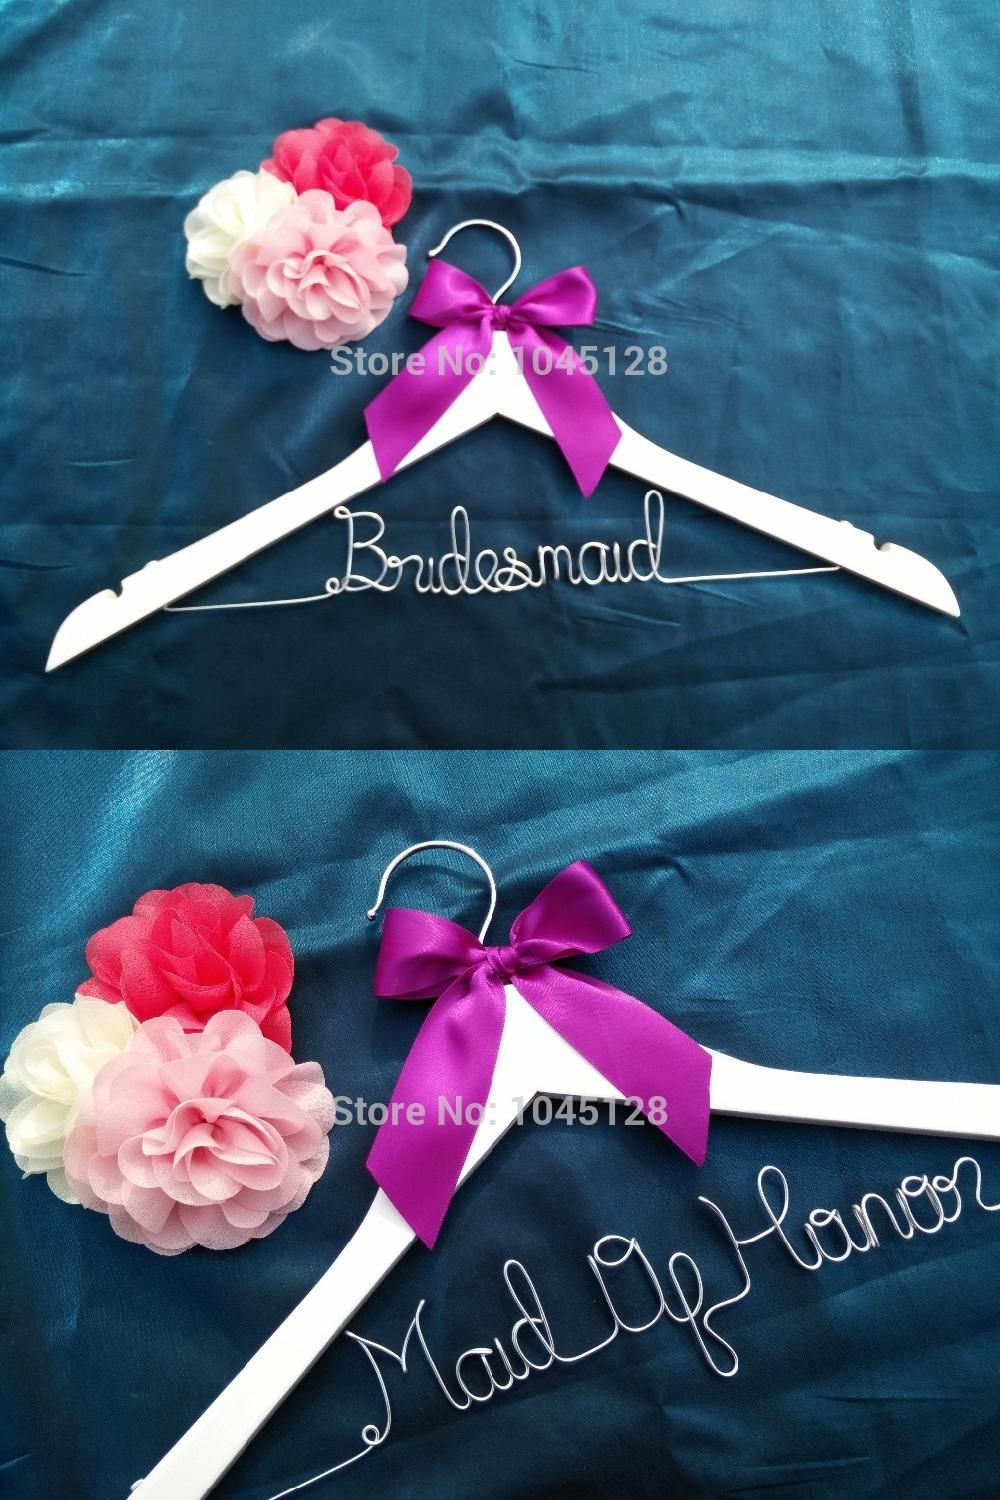 Free shipping Personalized Wedding Hanger, bridesmaid gifts, name ...